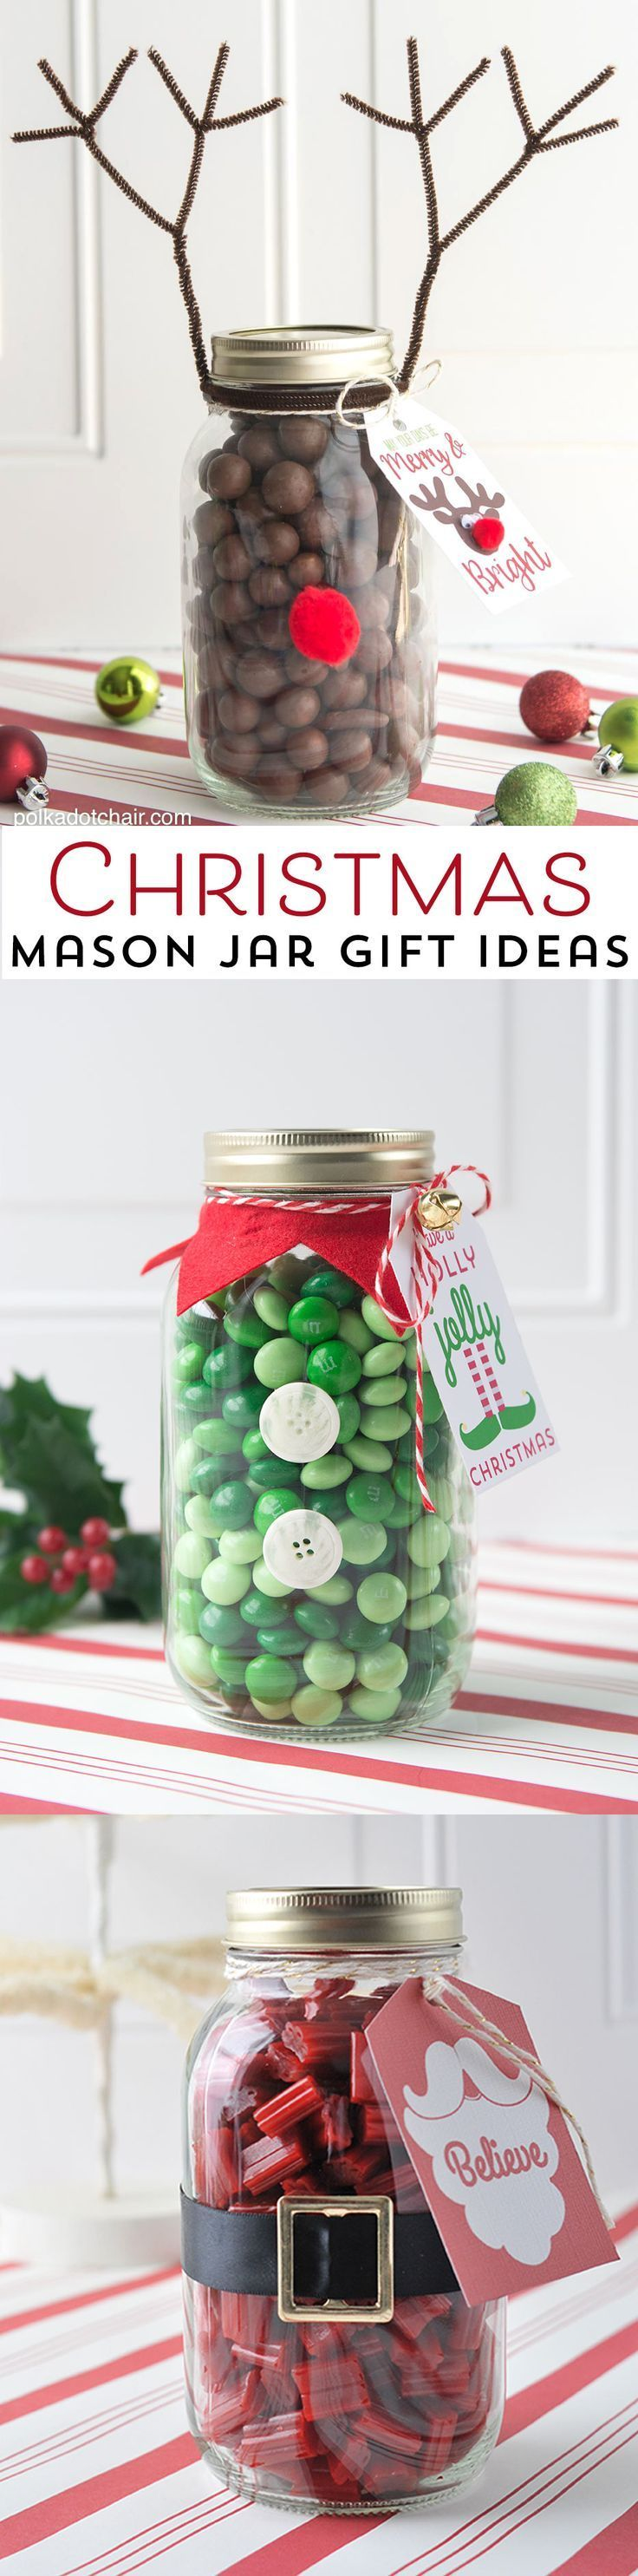 Reindeer Mason Jar Christmas Gift Idea So Cute And Easy Would Make A Fun Neighbor Or Teacher